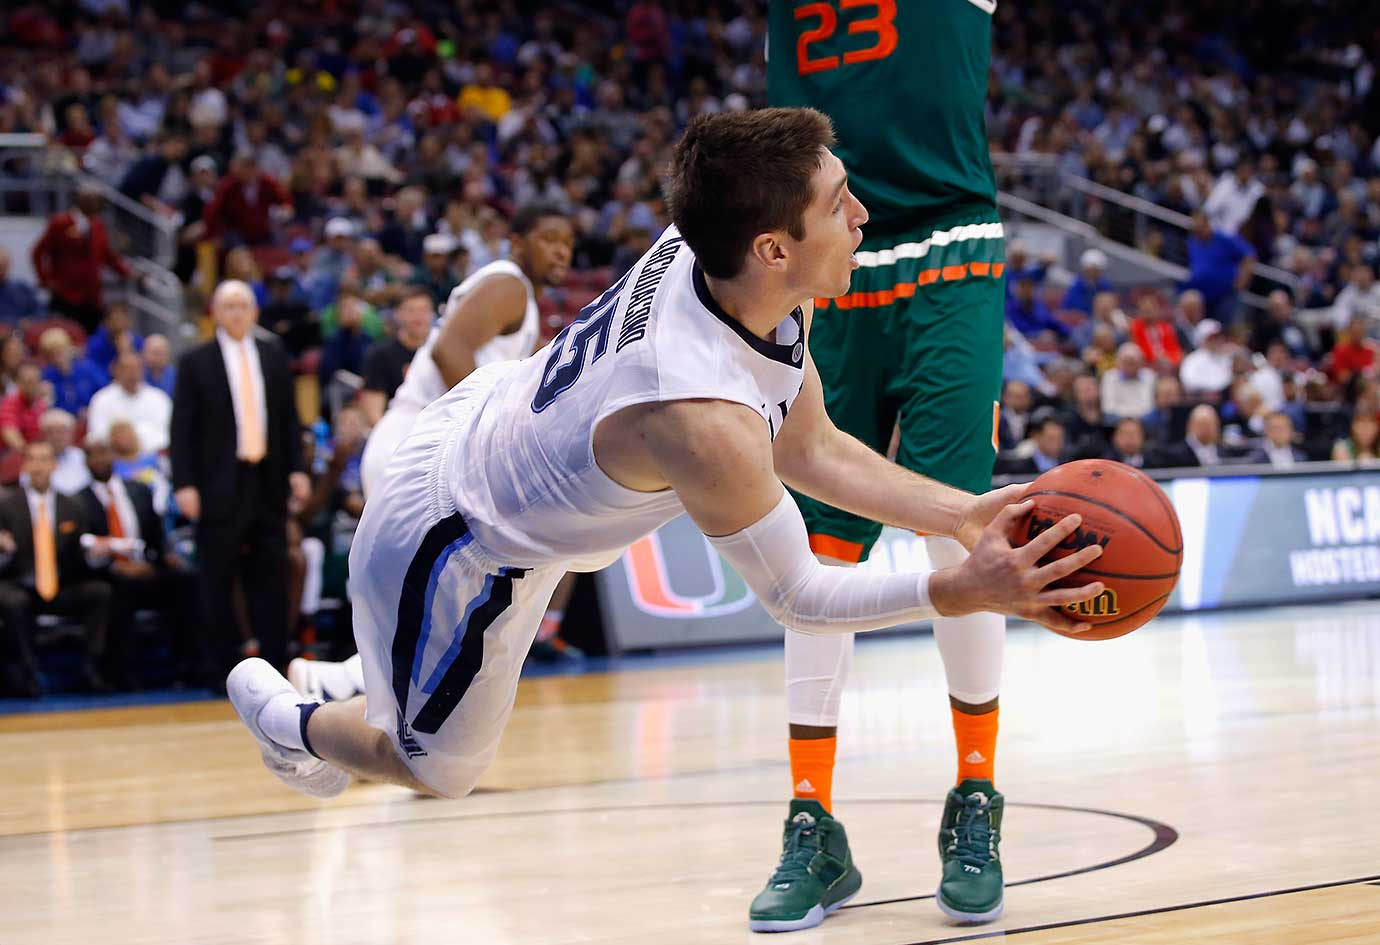 Ryan Arcidiacono of Villanova attempts to prevent the ball from going out of bounds against Miami.